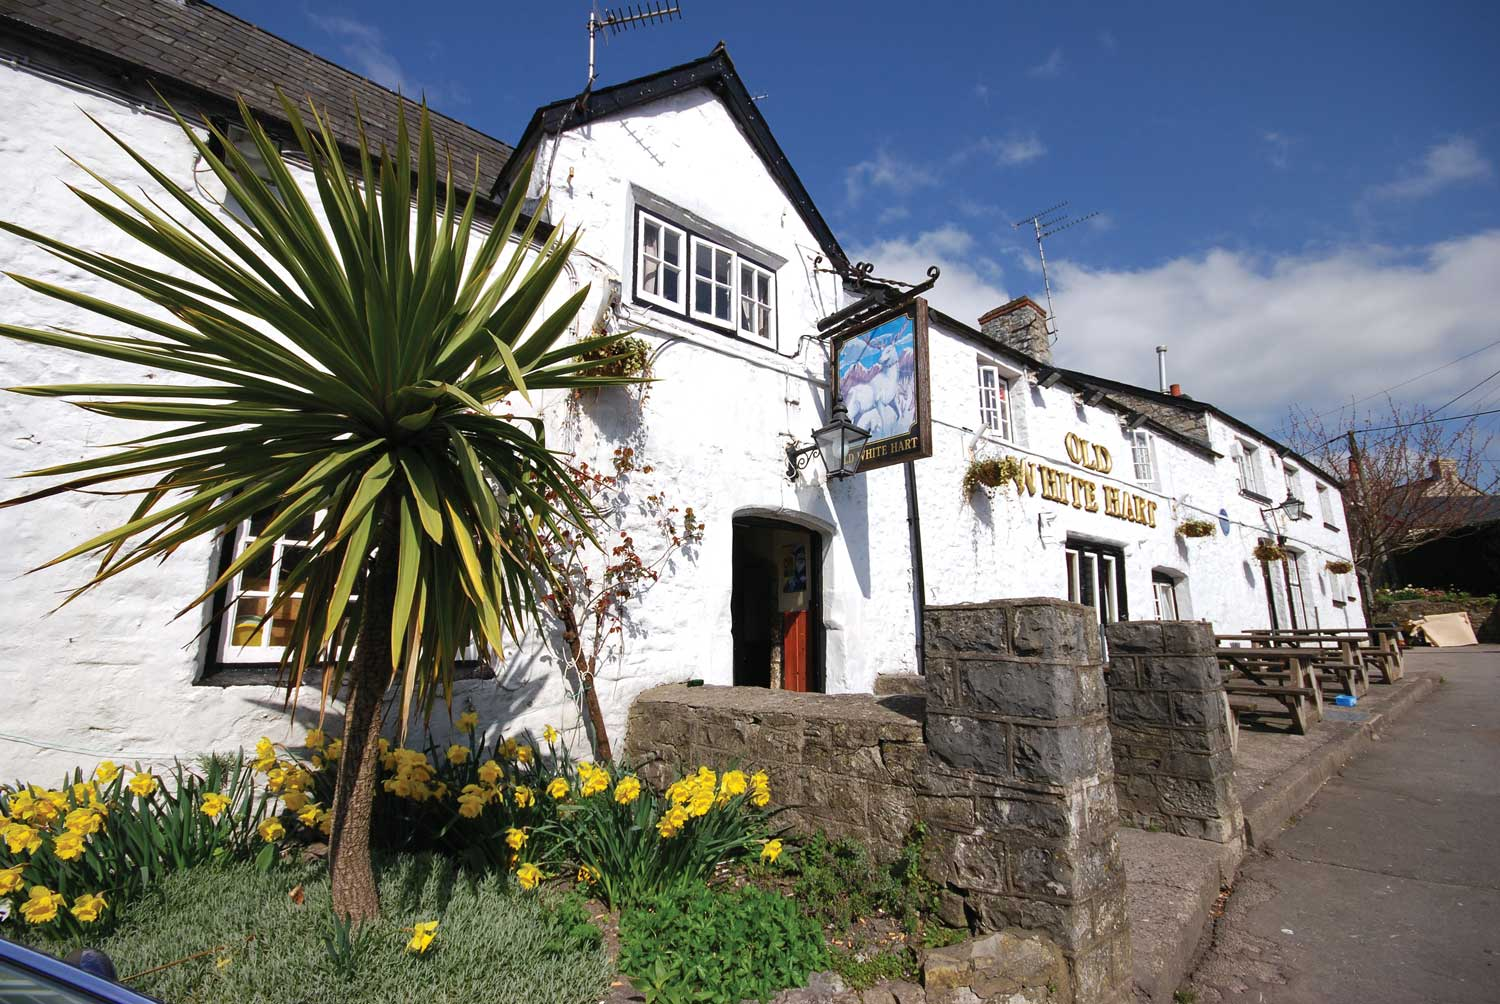 LLantwit Major Old White Heart pub